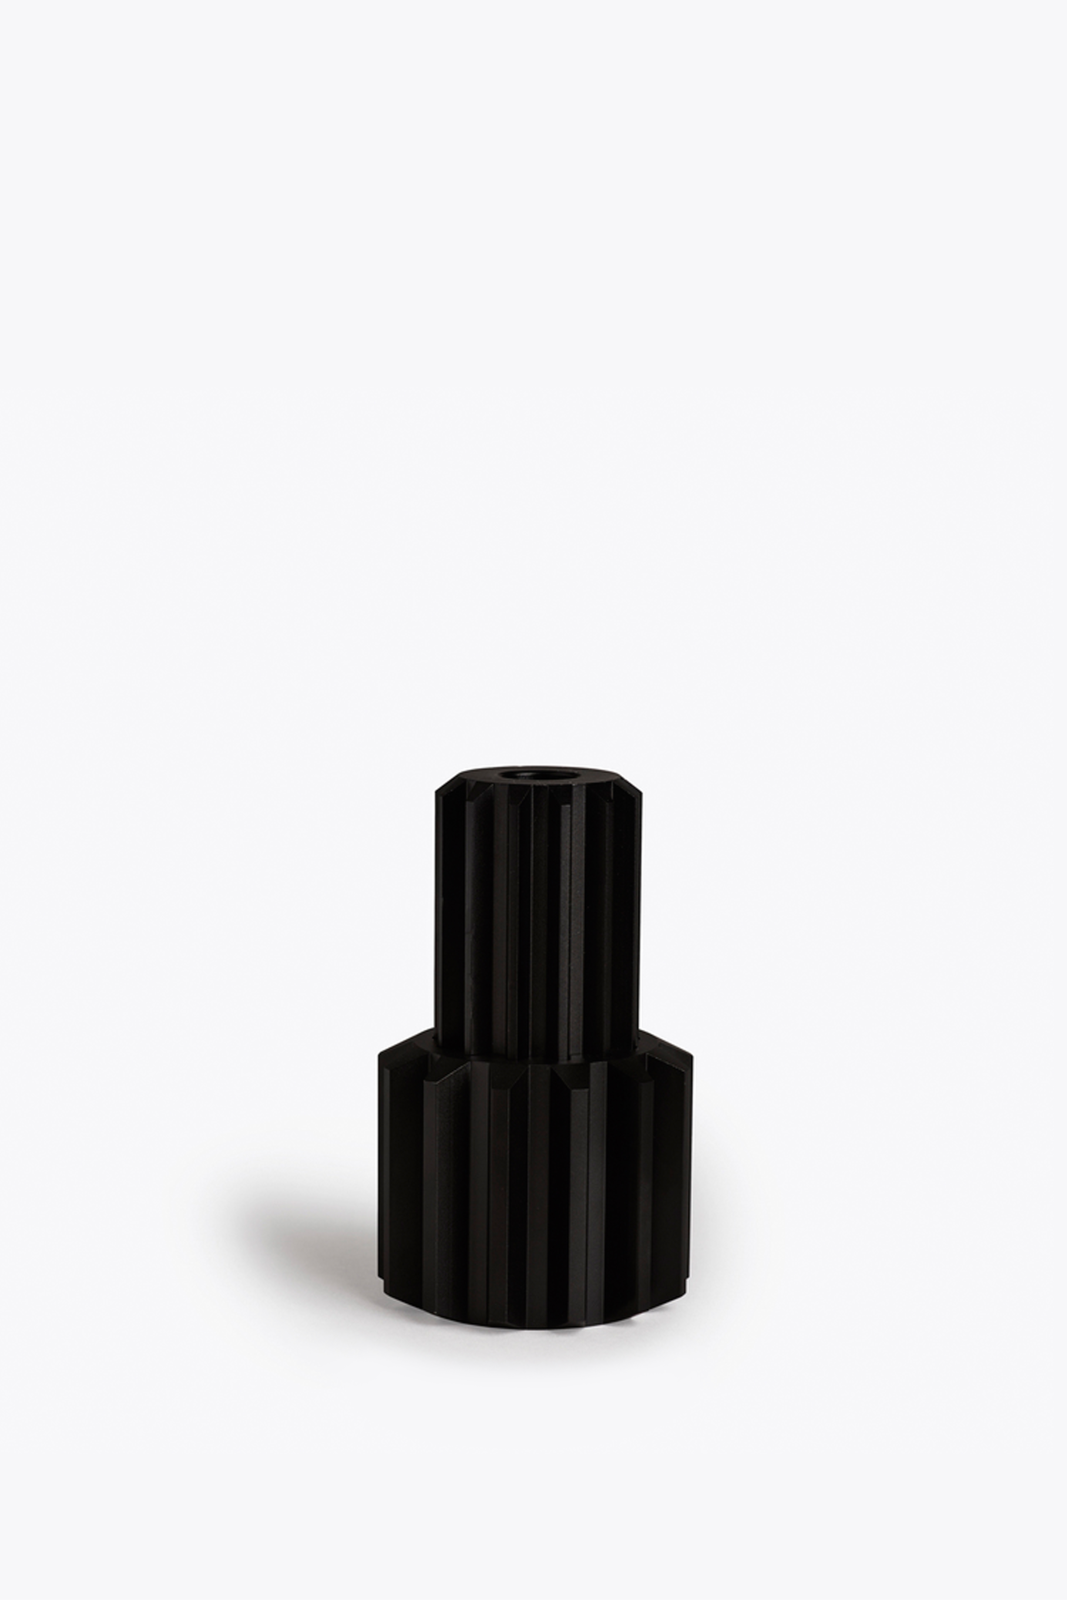 Gear Candle Holder Graphite Black Anodized Aluminium, Tall